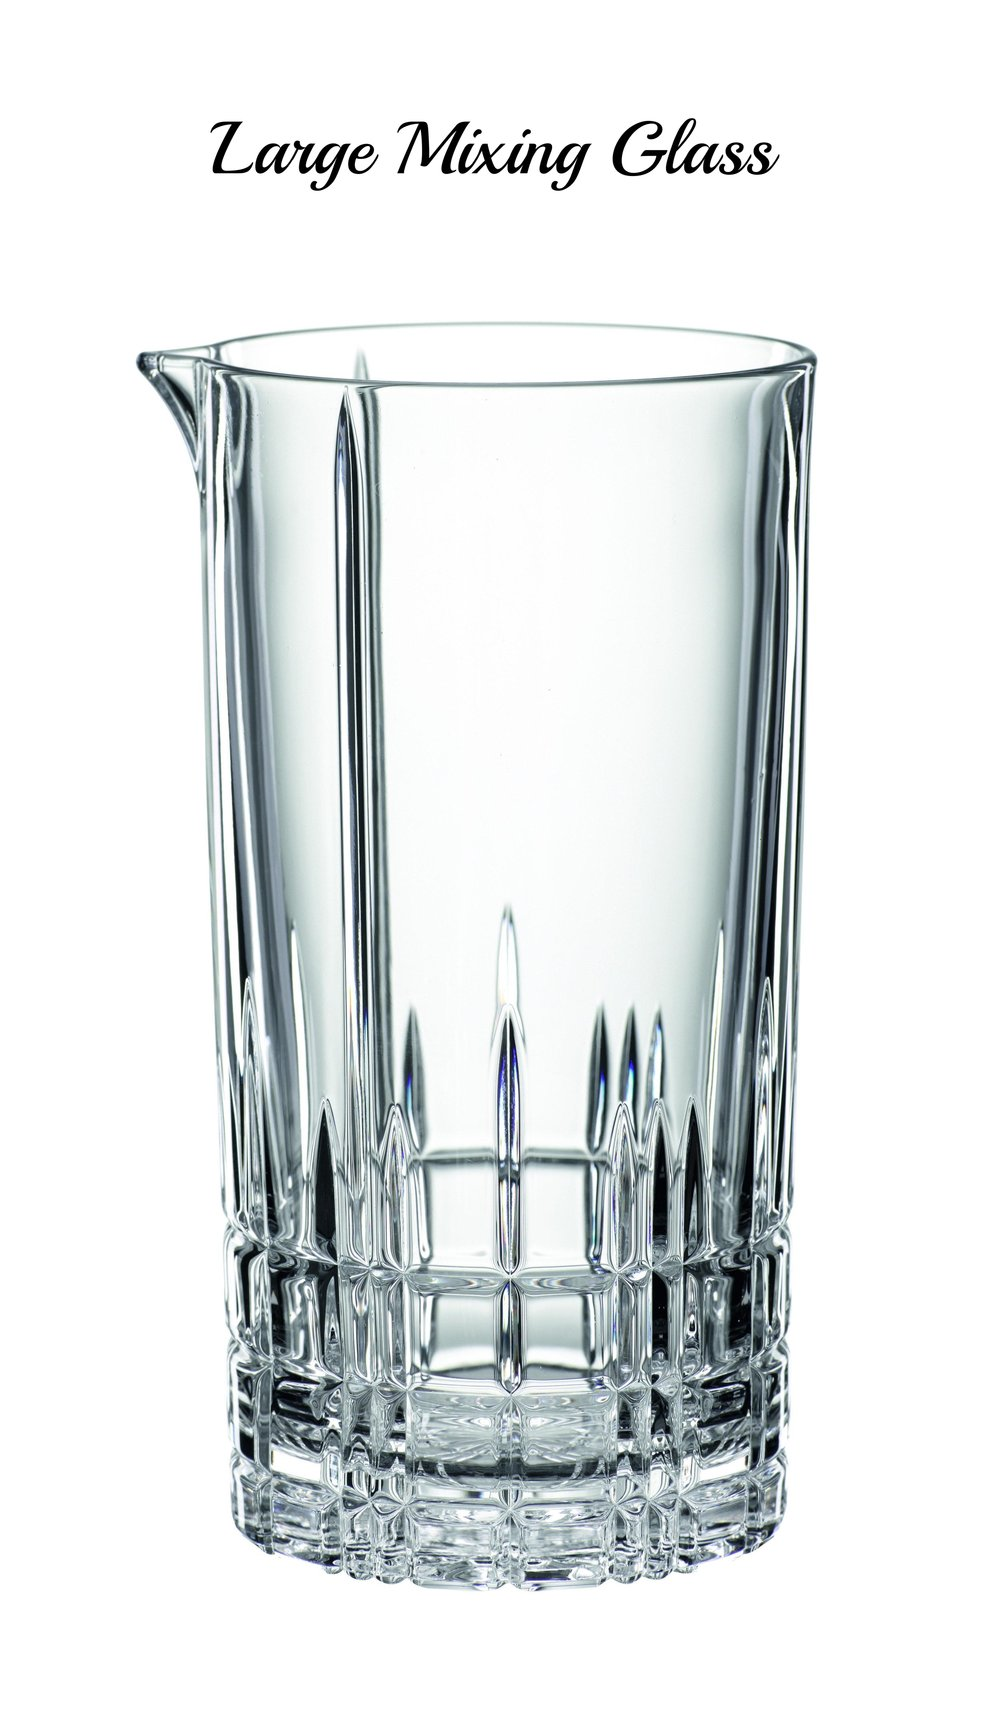 Perfect Large Mixing Glass 4500153.jpg